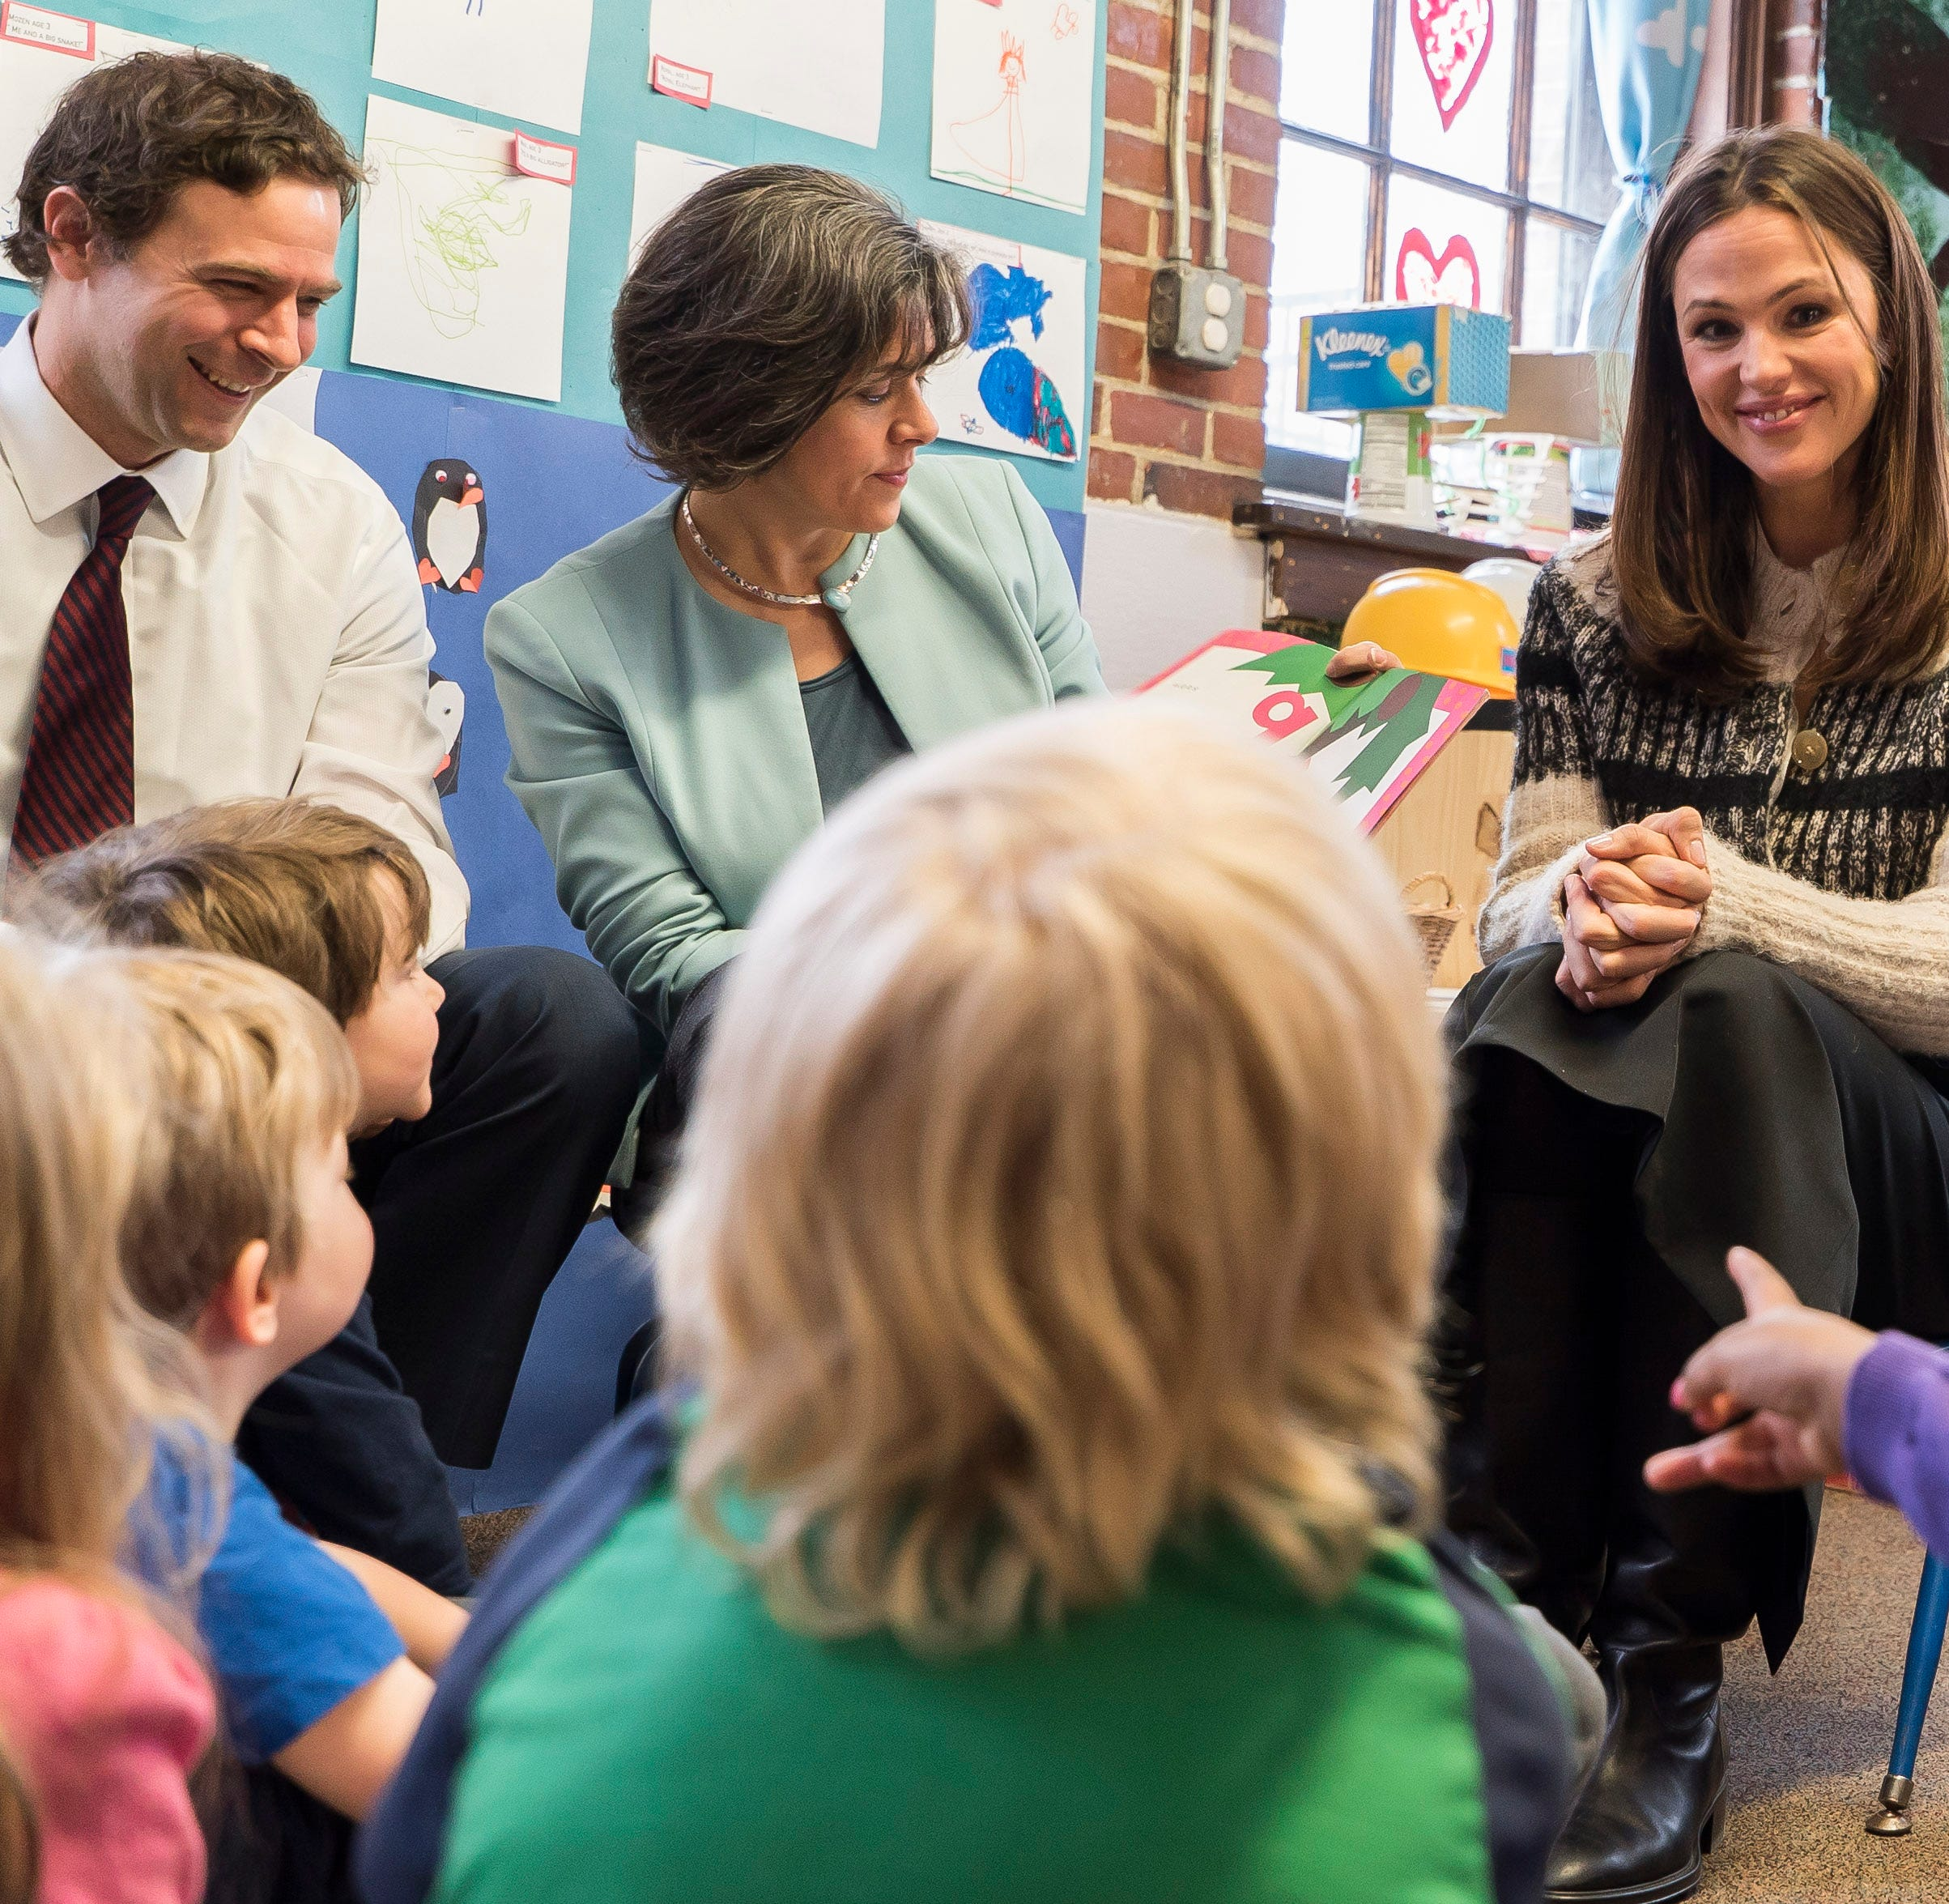 From left, Senate President Pro Tem Tim Ashe, House Speaker Mitzi Johnson, Actress Jennifer Garner and Gov. Phil Scott read books to kids at the Robin's Nest Children's Center in Burlington on Thursday morning, Feb 21, 2019. Garner and Mark K. Shriver, CEO of Save the Children Action Network (SCAN), came to Vermont to highlight the educational and economic impacts of increasing access to high-quality, affordable child care.